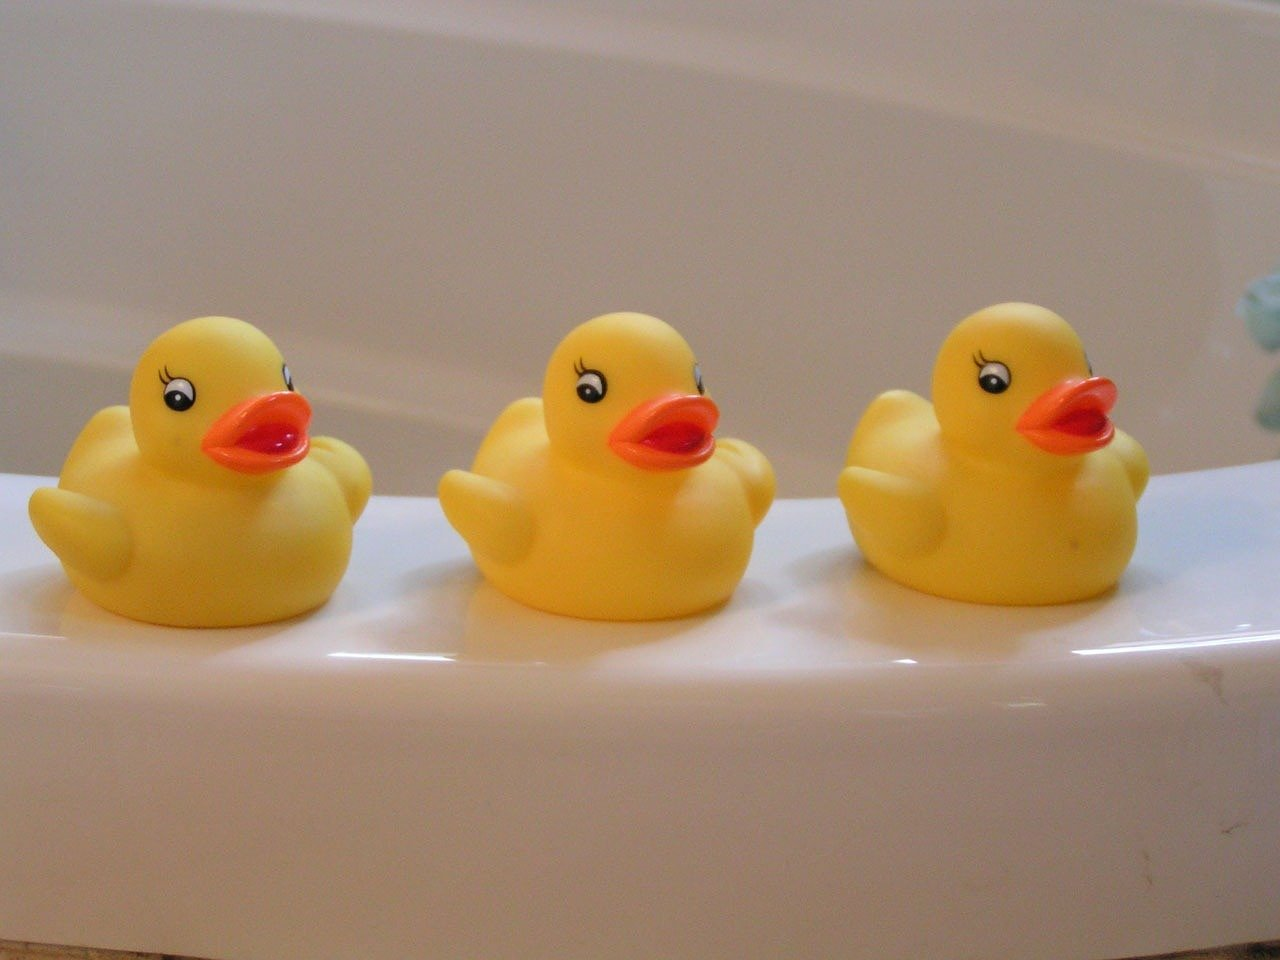 Rubber duckies in a row. Image credit: Pixabay